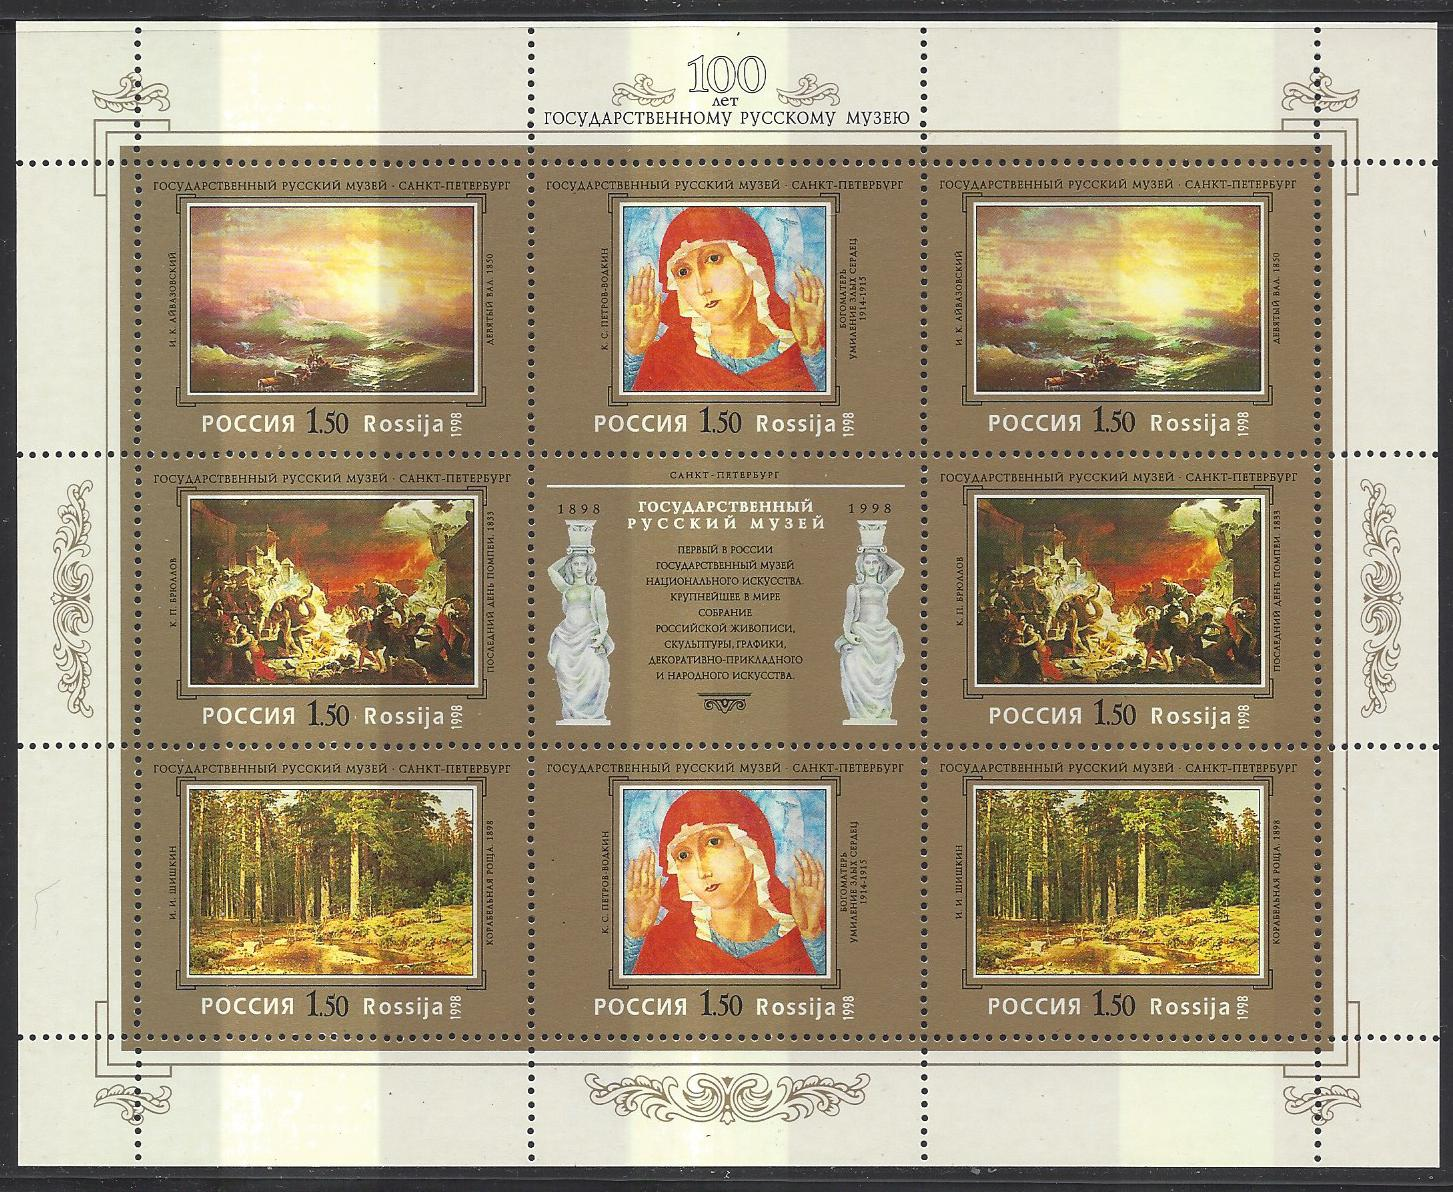 Soviet Russia - 1996+ Year 1998 Scott 6449a